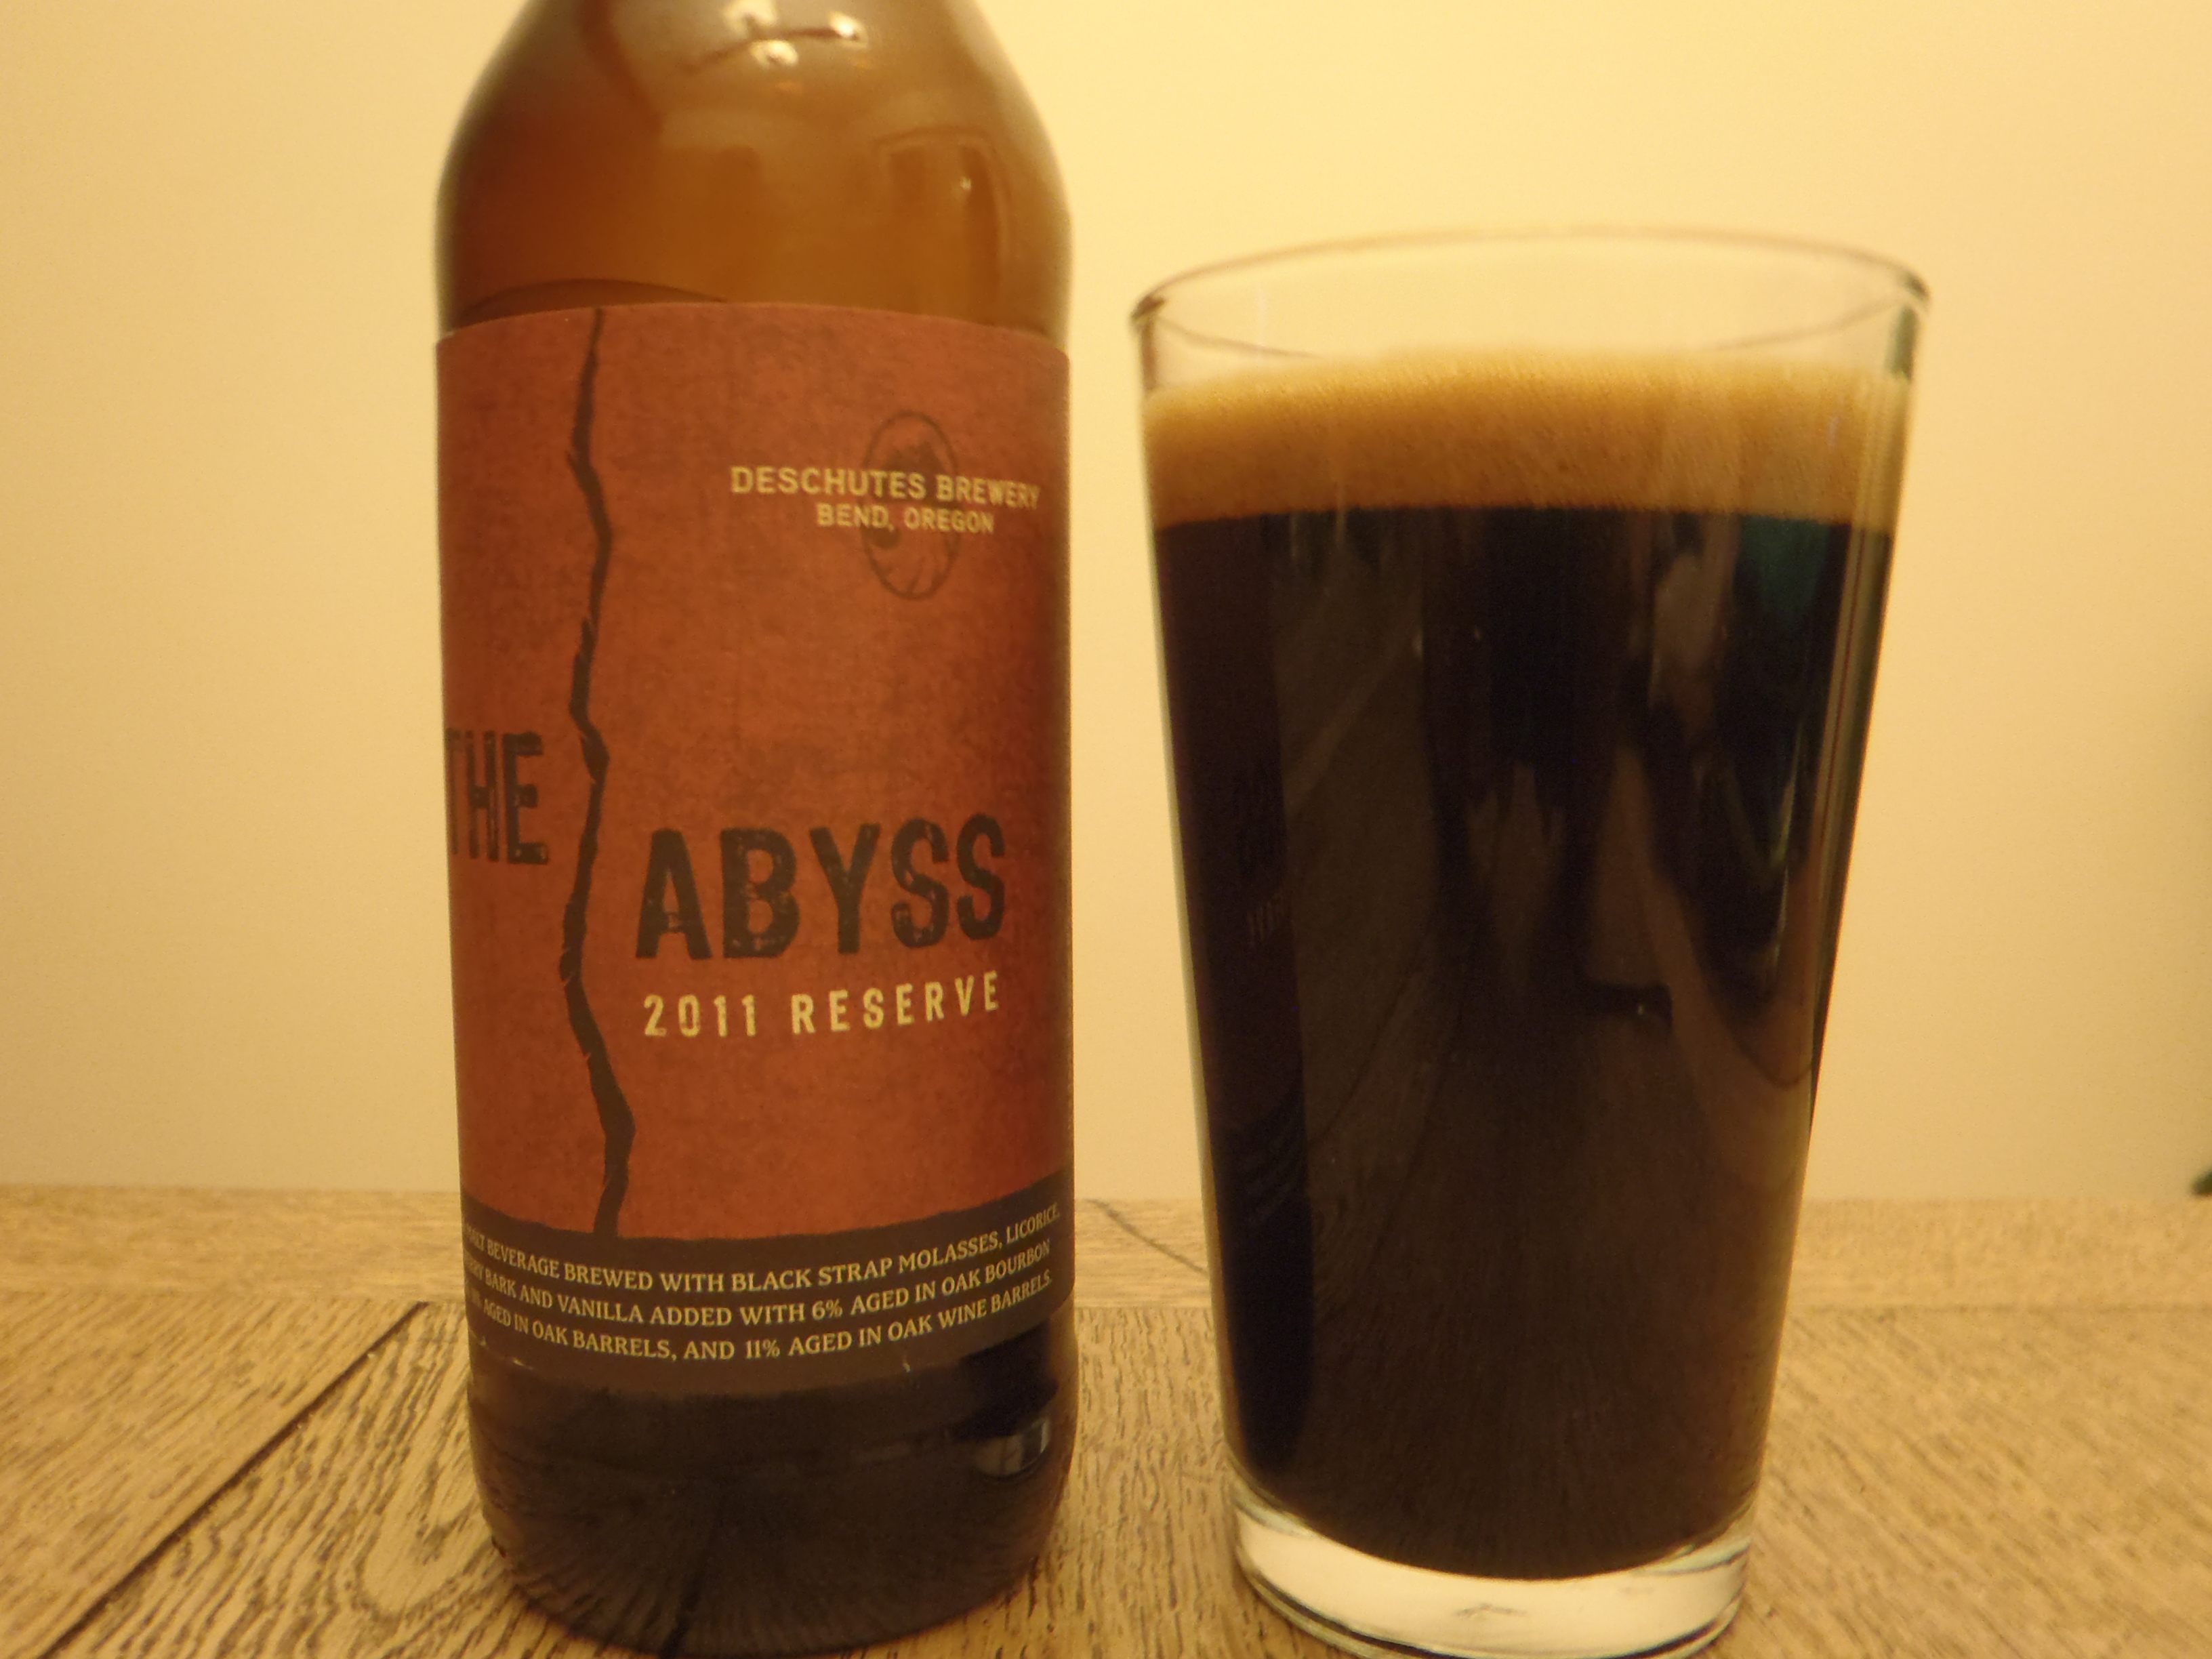 Deschutes Brewery: The Abyss 2011 Reserve